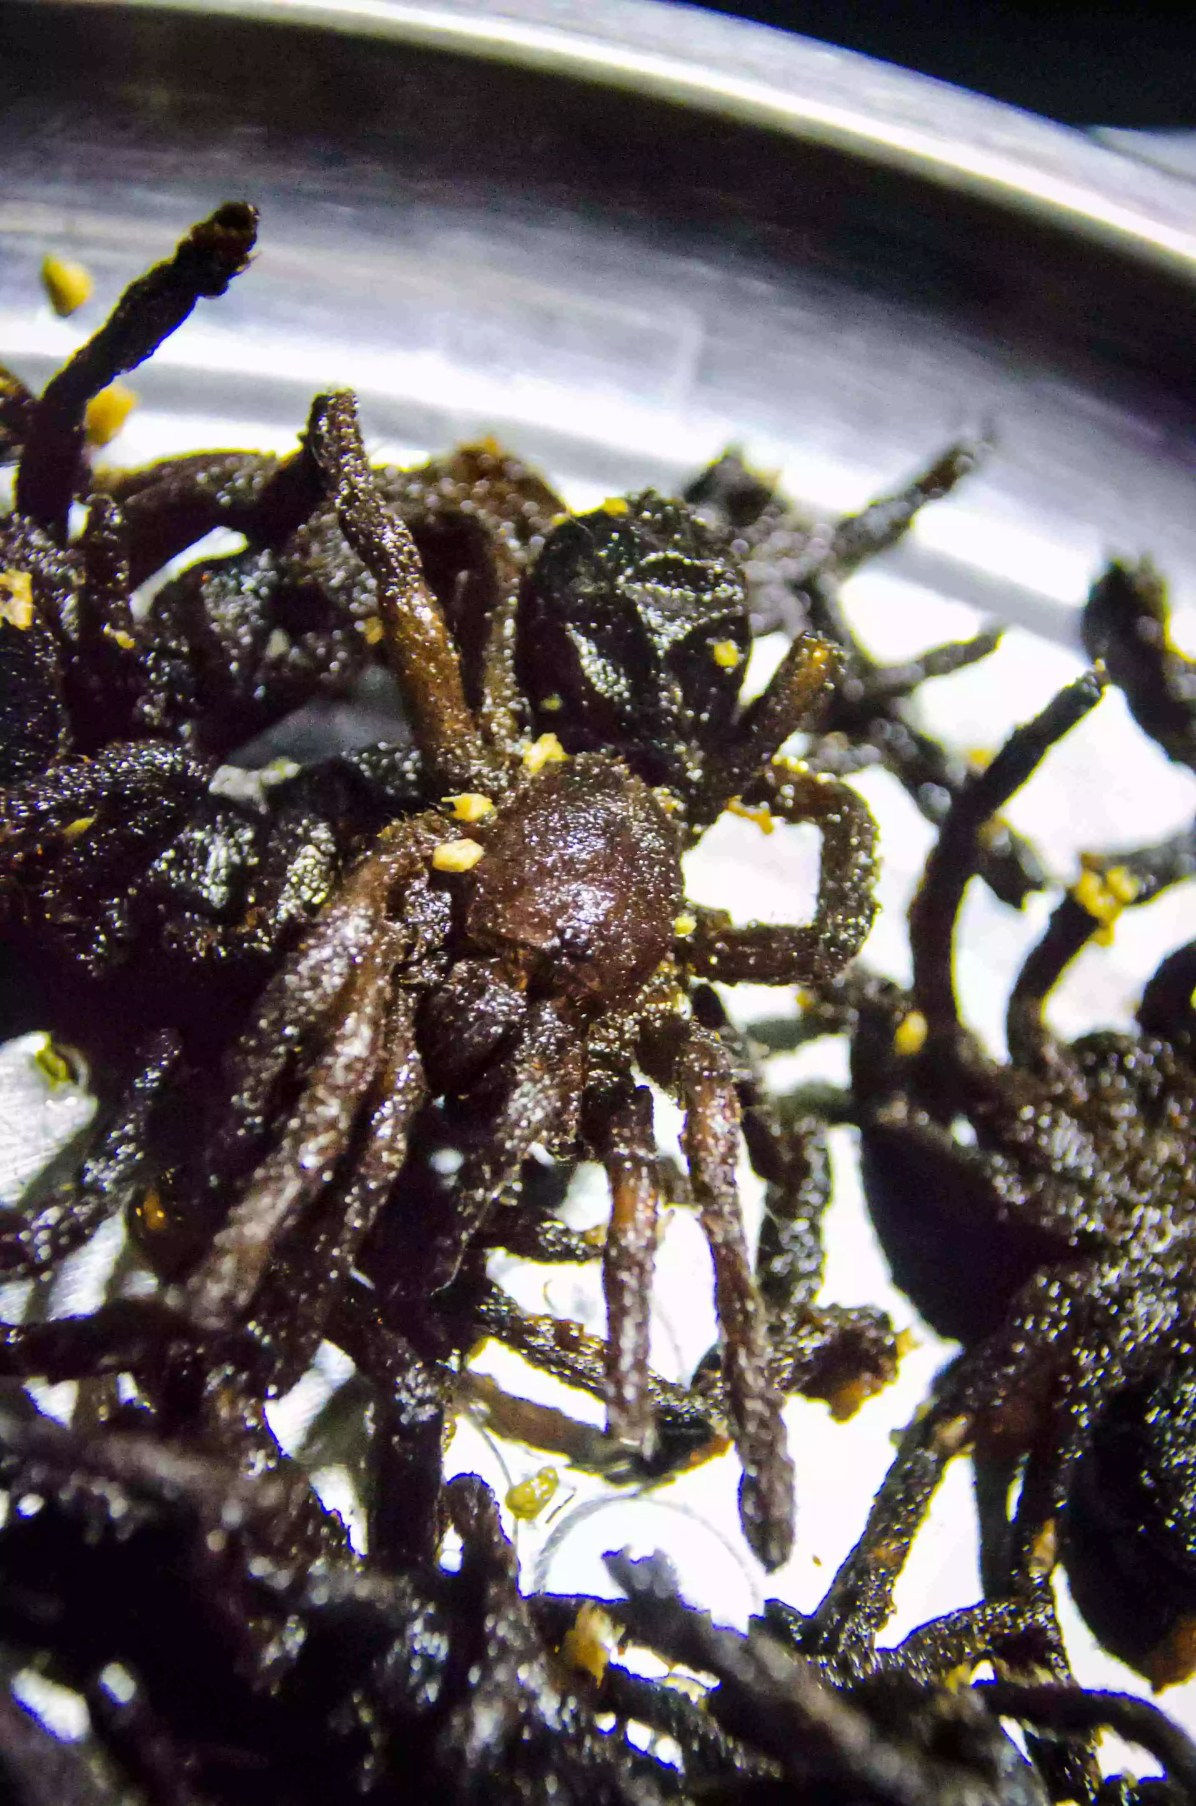 Eating Insects: Just close your eyes, it'll be over soon